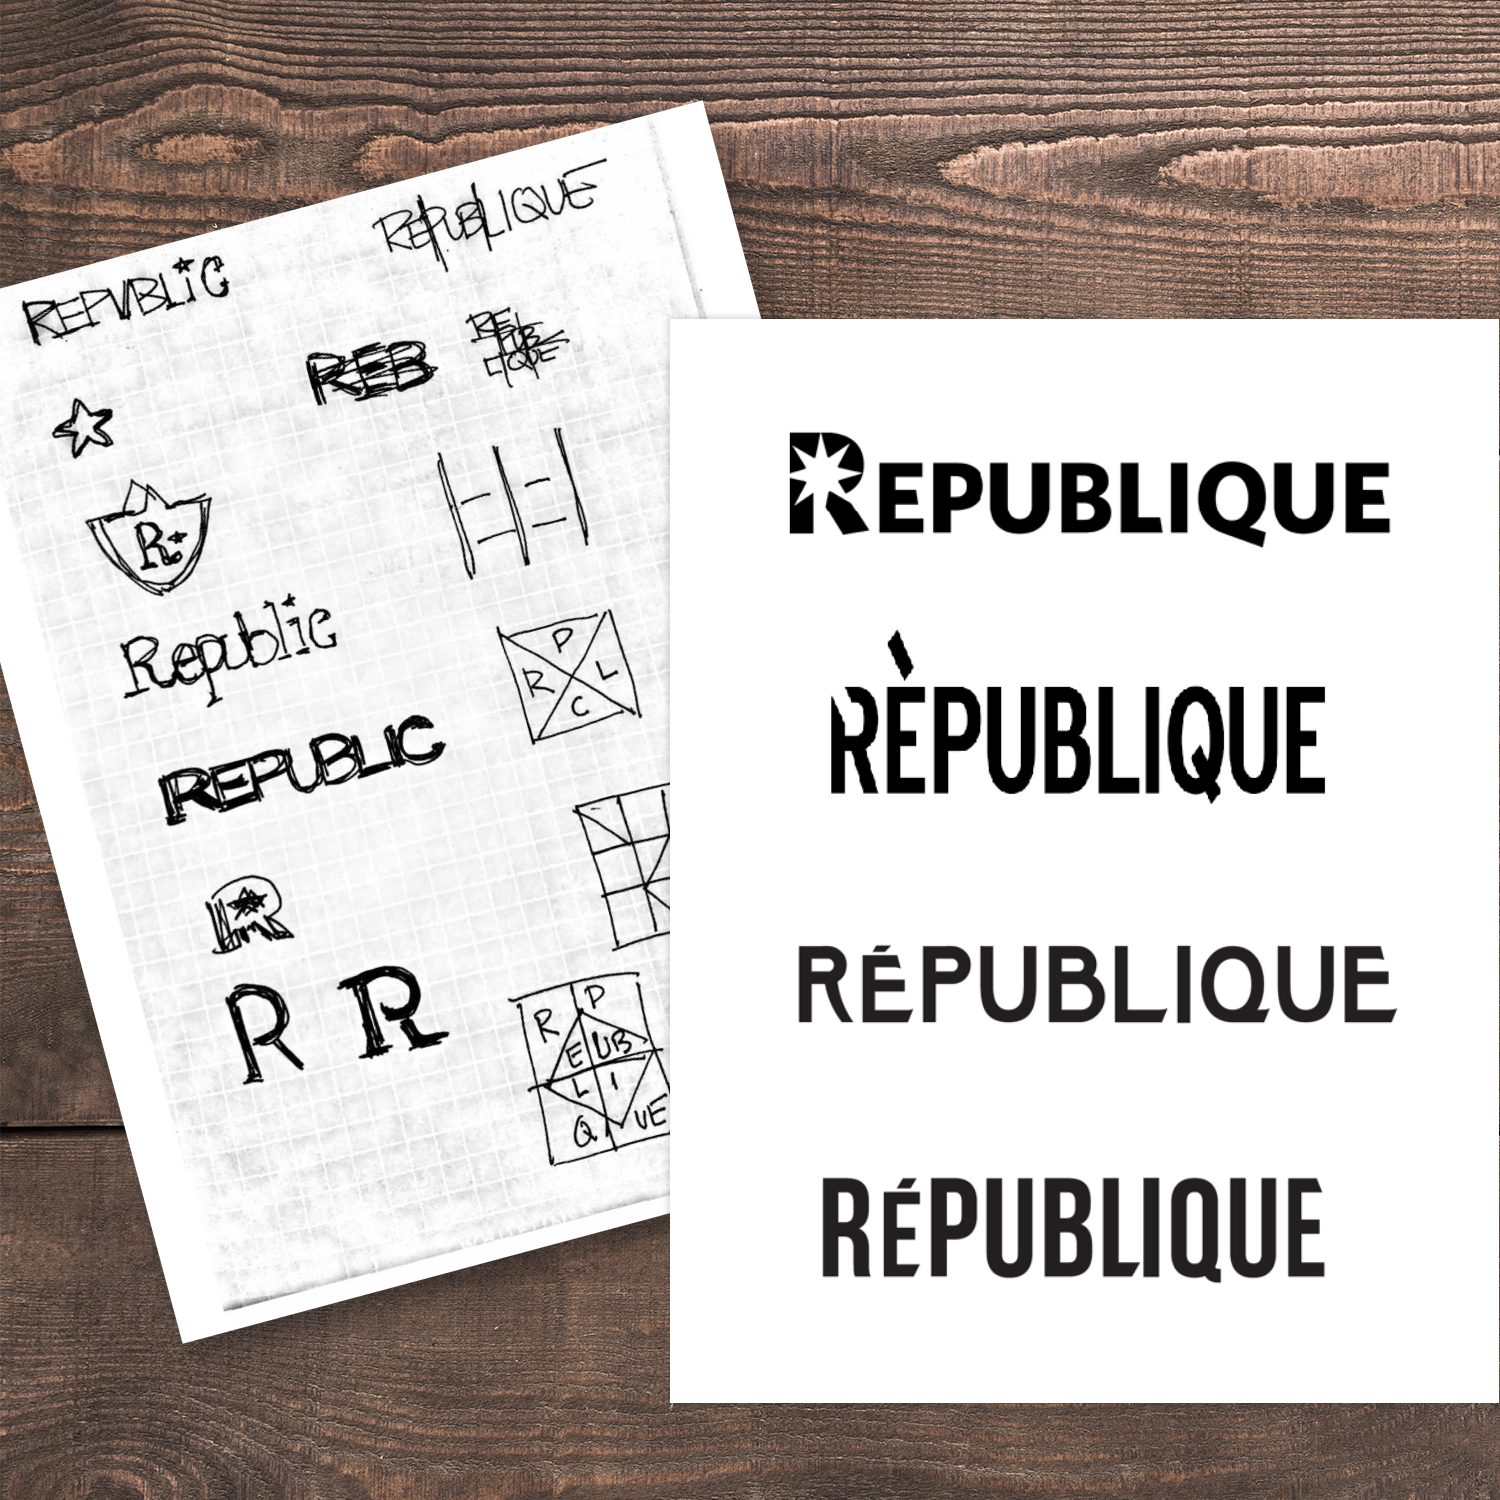 Republique_Concepts.png